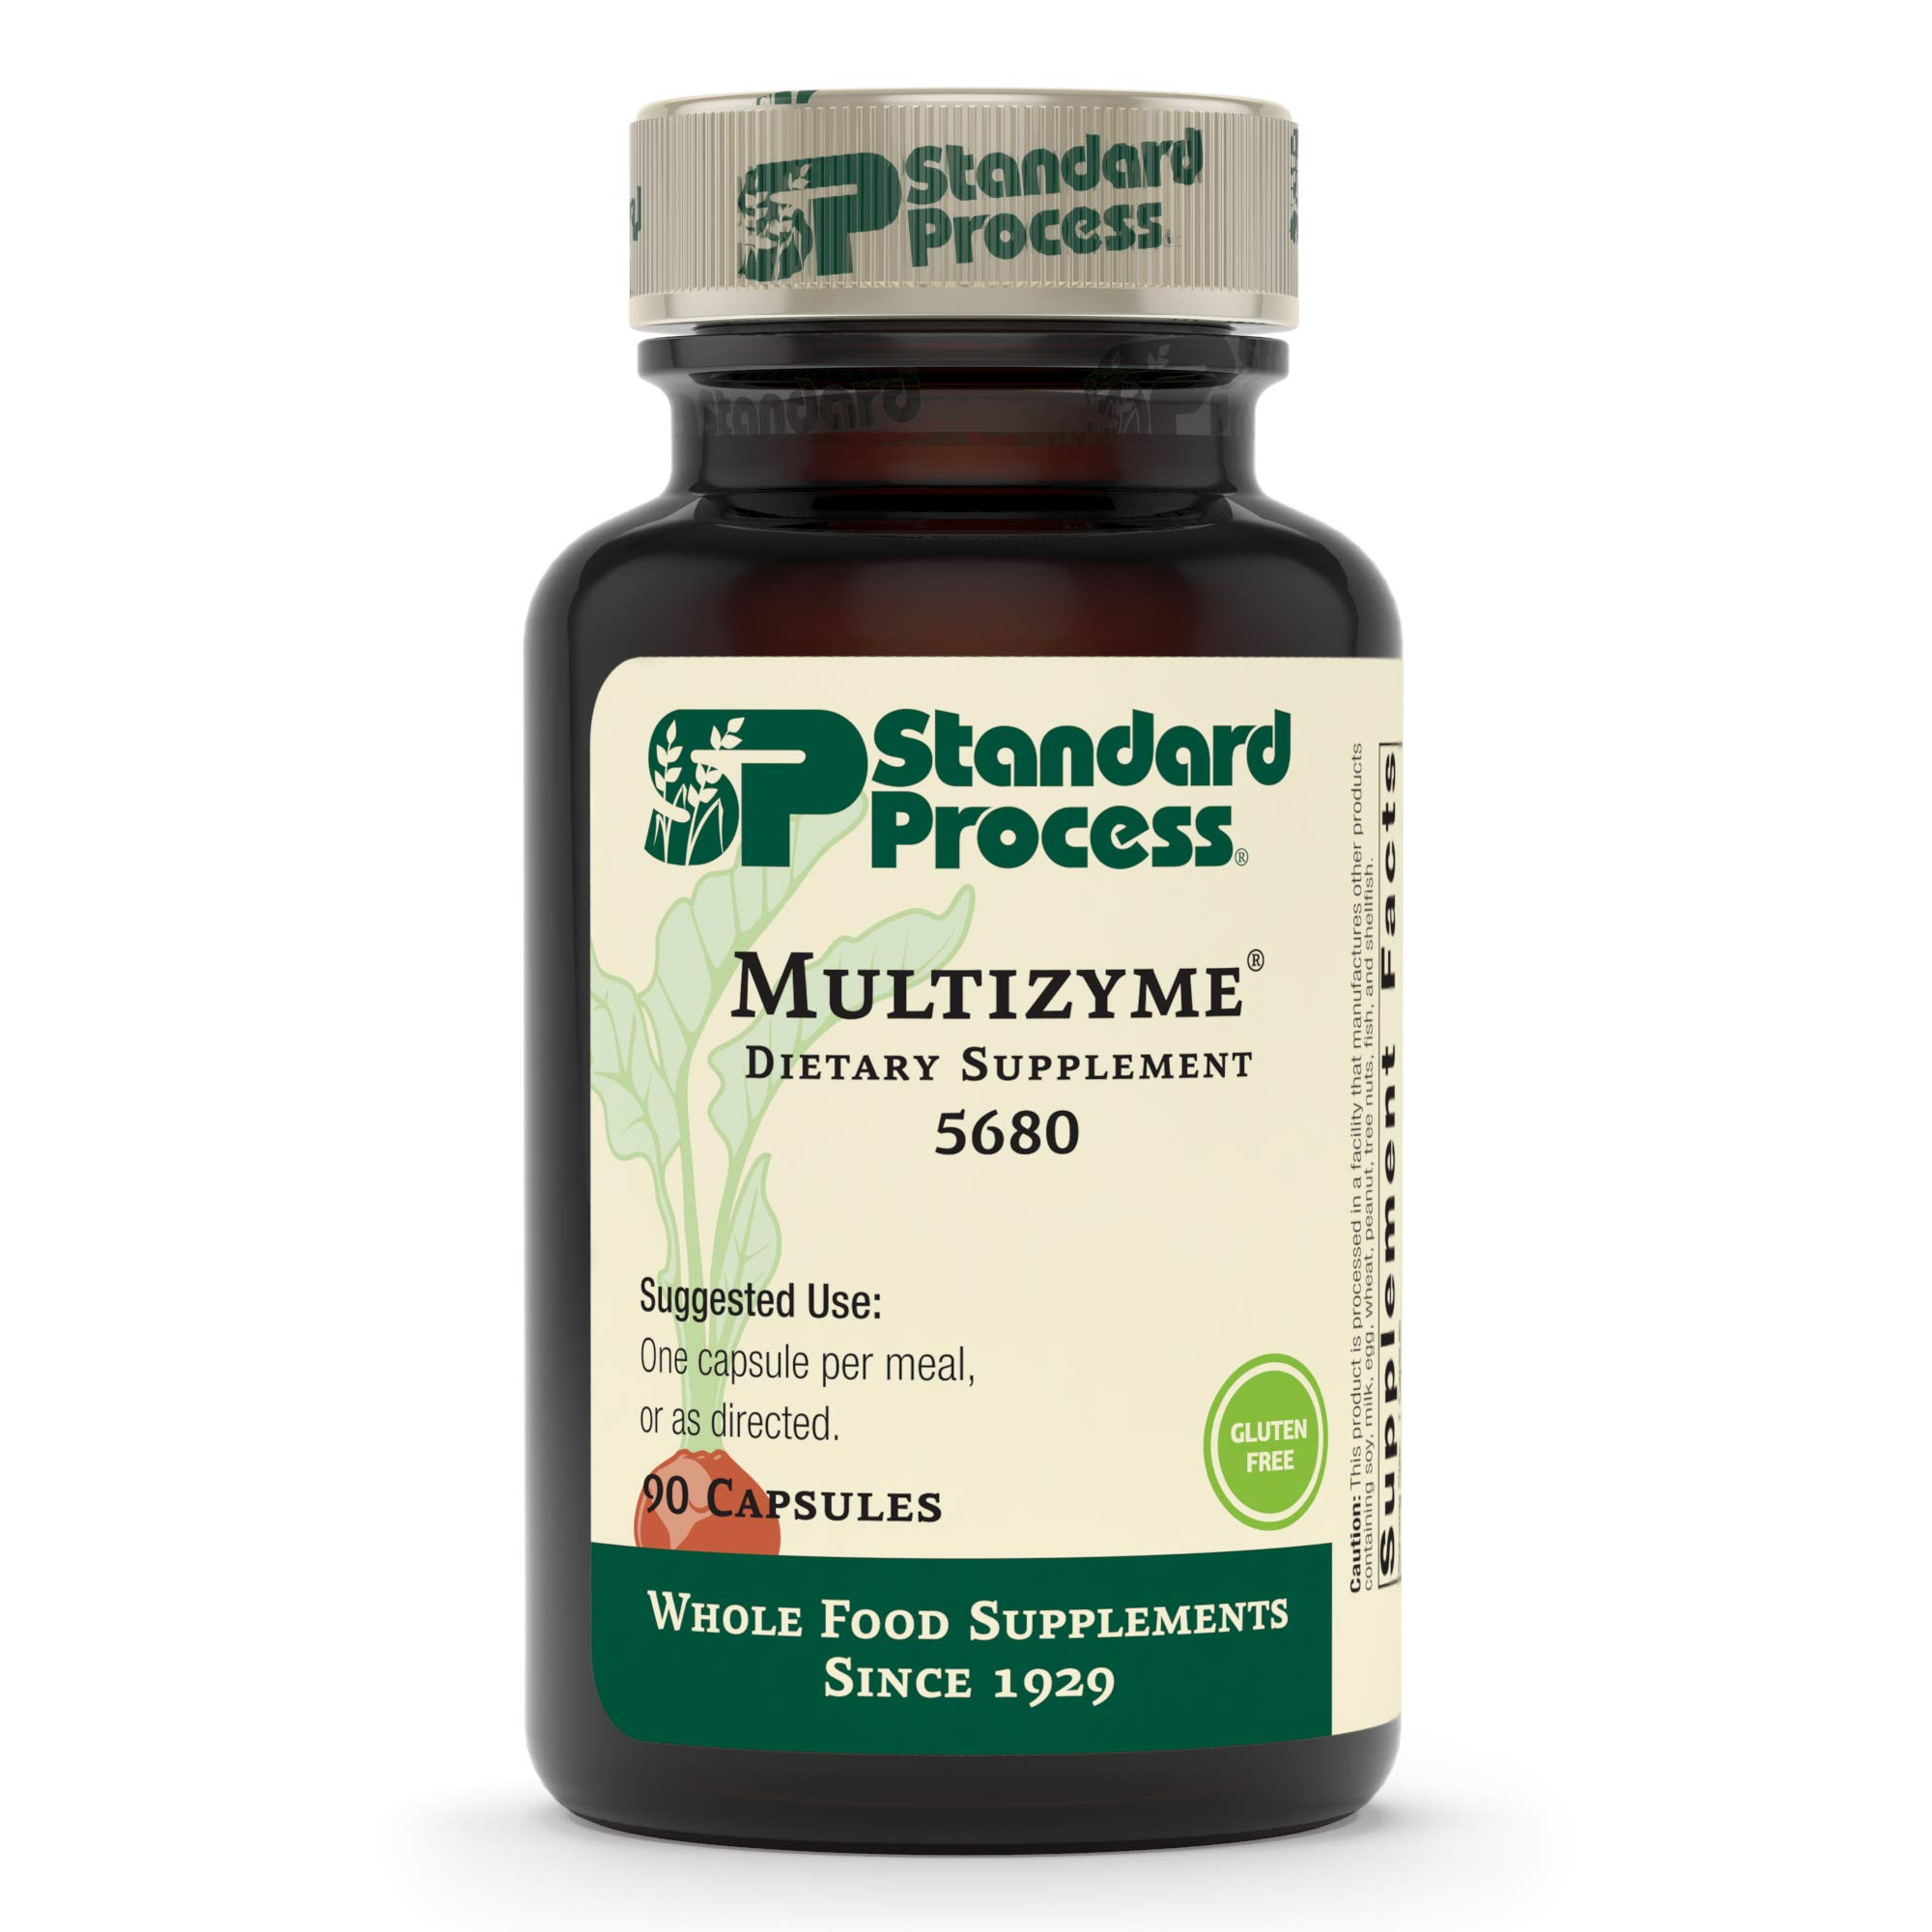 Standard Process - Multizyme - Digestion and Pancreatic Function Support Supplement, Provides Digestive Enzymes and Pancreatic Enzymes, Gluten Free - 90 Capsules by Standard Process (Image #2)